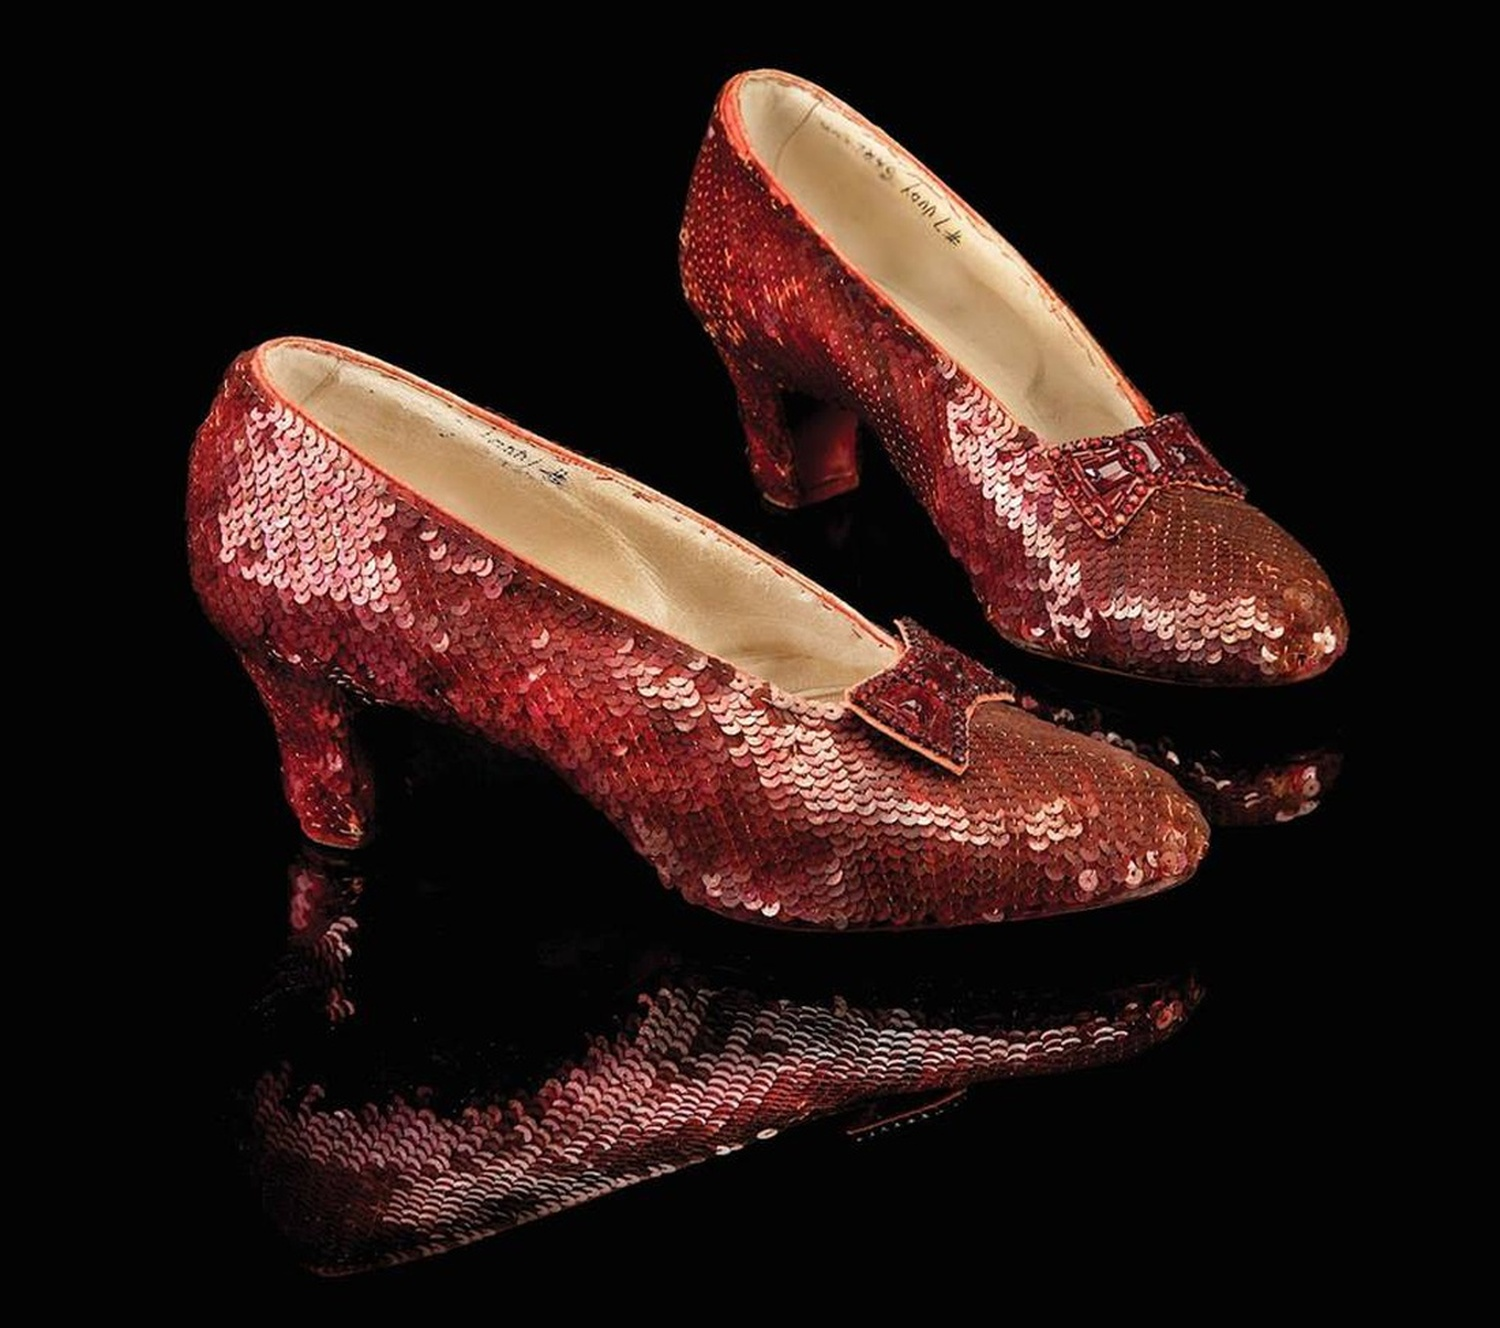 kno dorothys ruby slippers - HD1500×1328